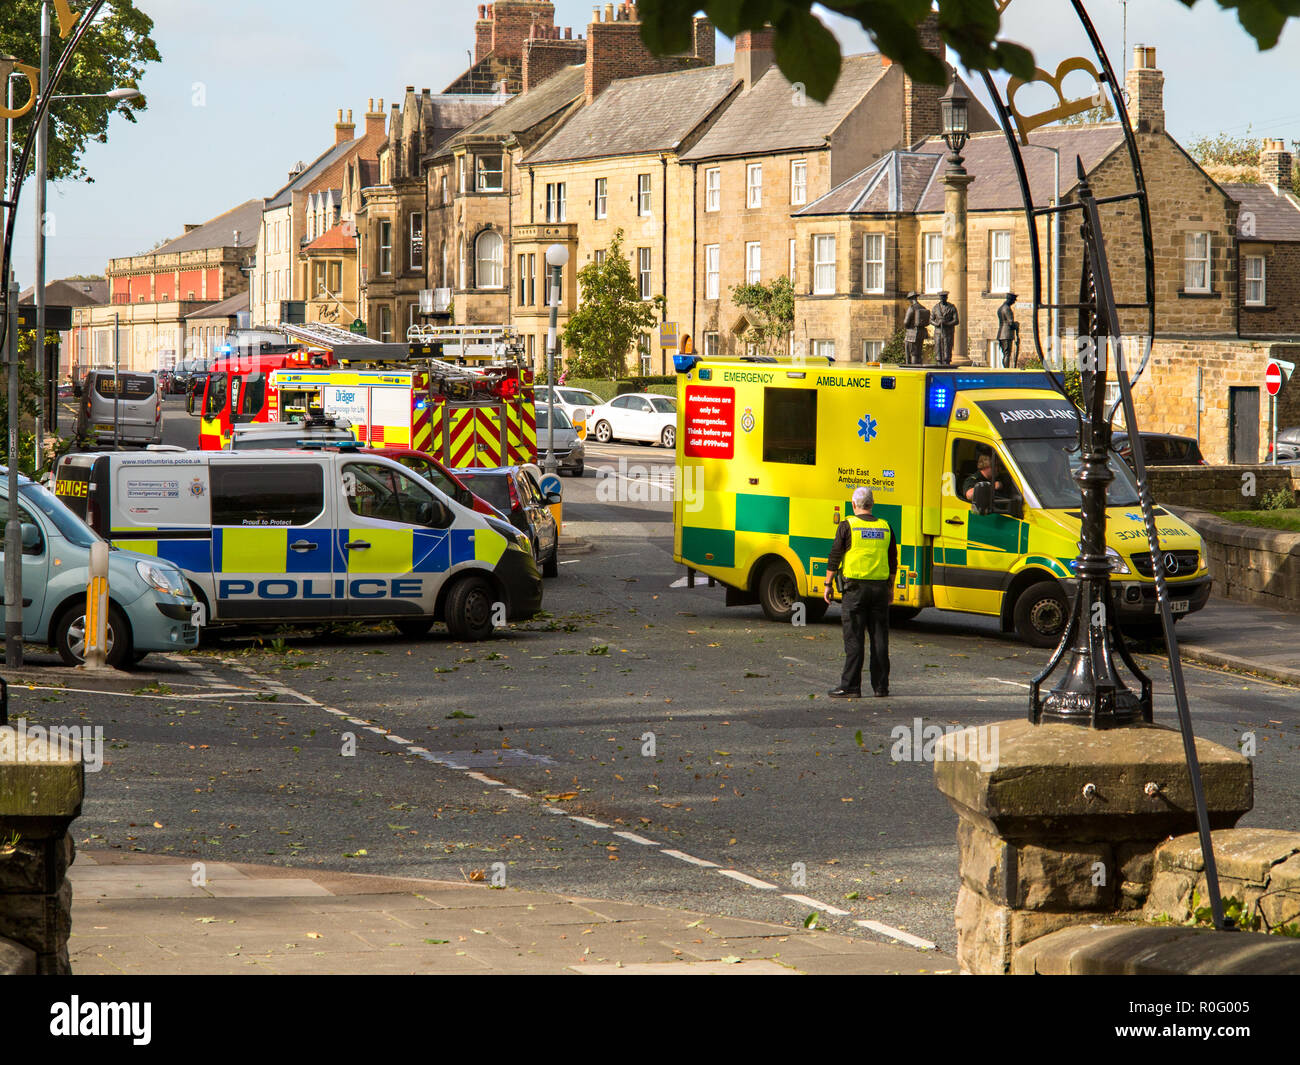 Emergency services fire police and ambulance paramedics attend a road traffic accident  at Alnwick Northumberland England UK - Stock Image